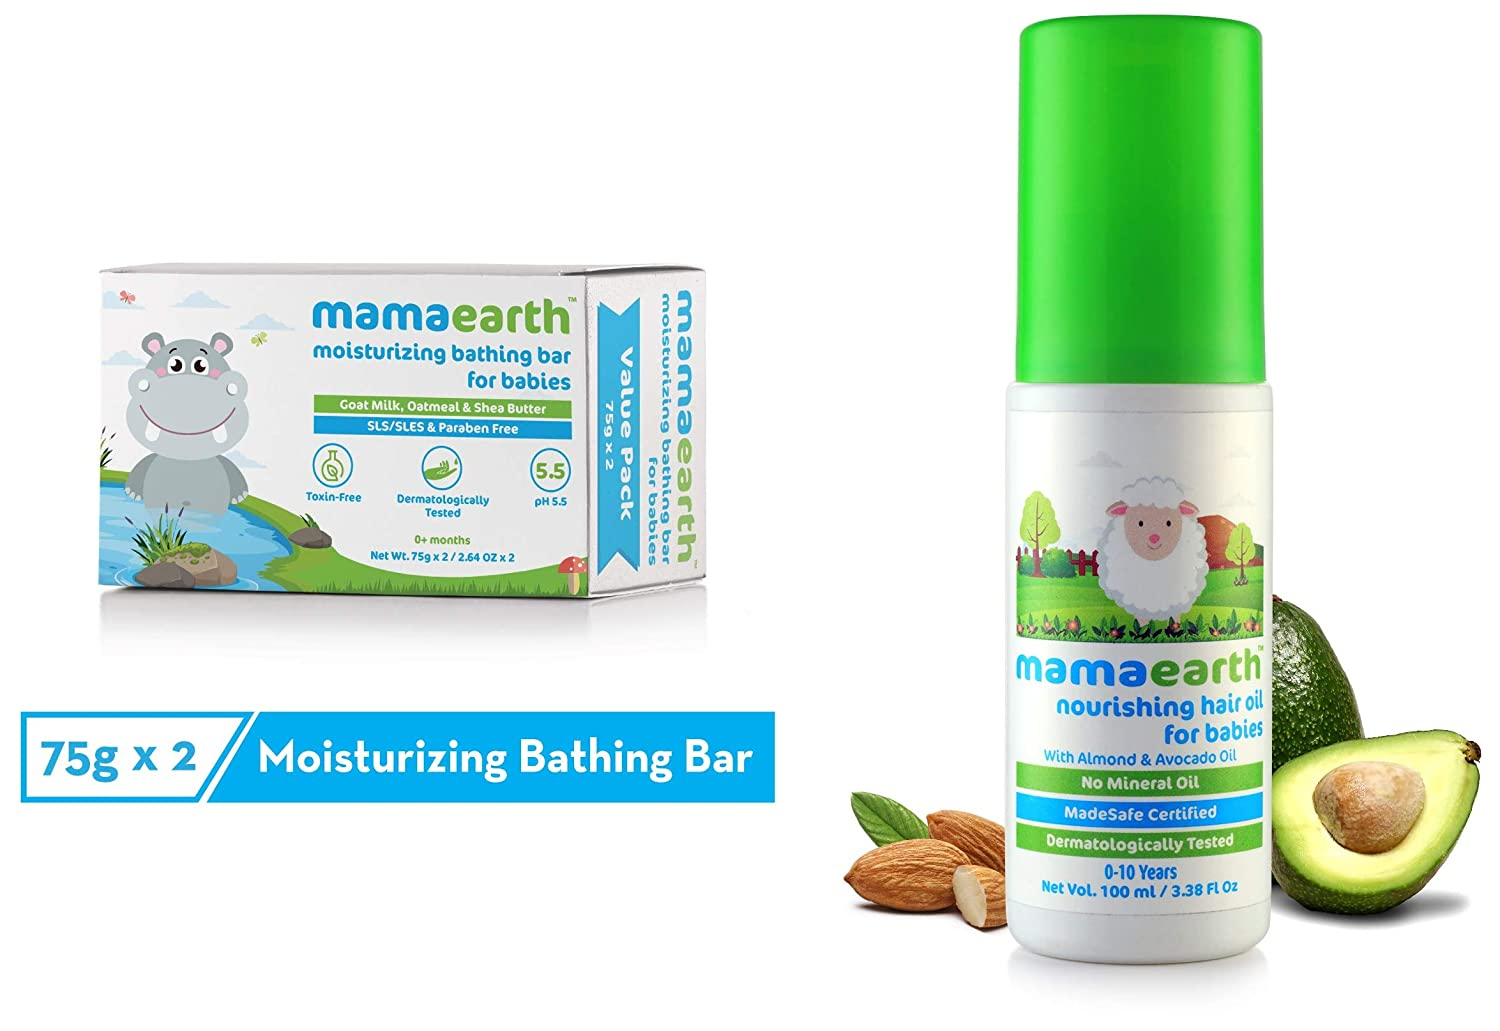 Mamaearth Moisturizing Baby Bathing Soap Bar pH 5.5 with Goat Milk and Oatmeal, 75g (Pack of 2) & Nourishing Hair Oil for Babies 100ml (0-10 Years) Combo